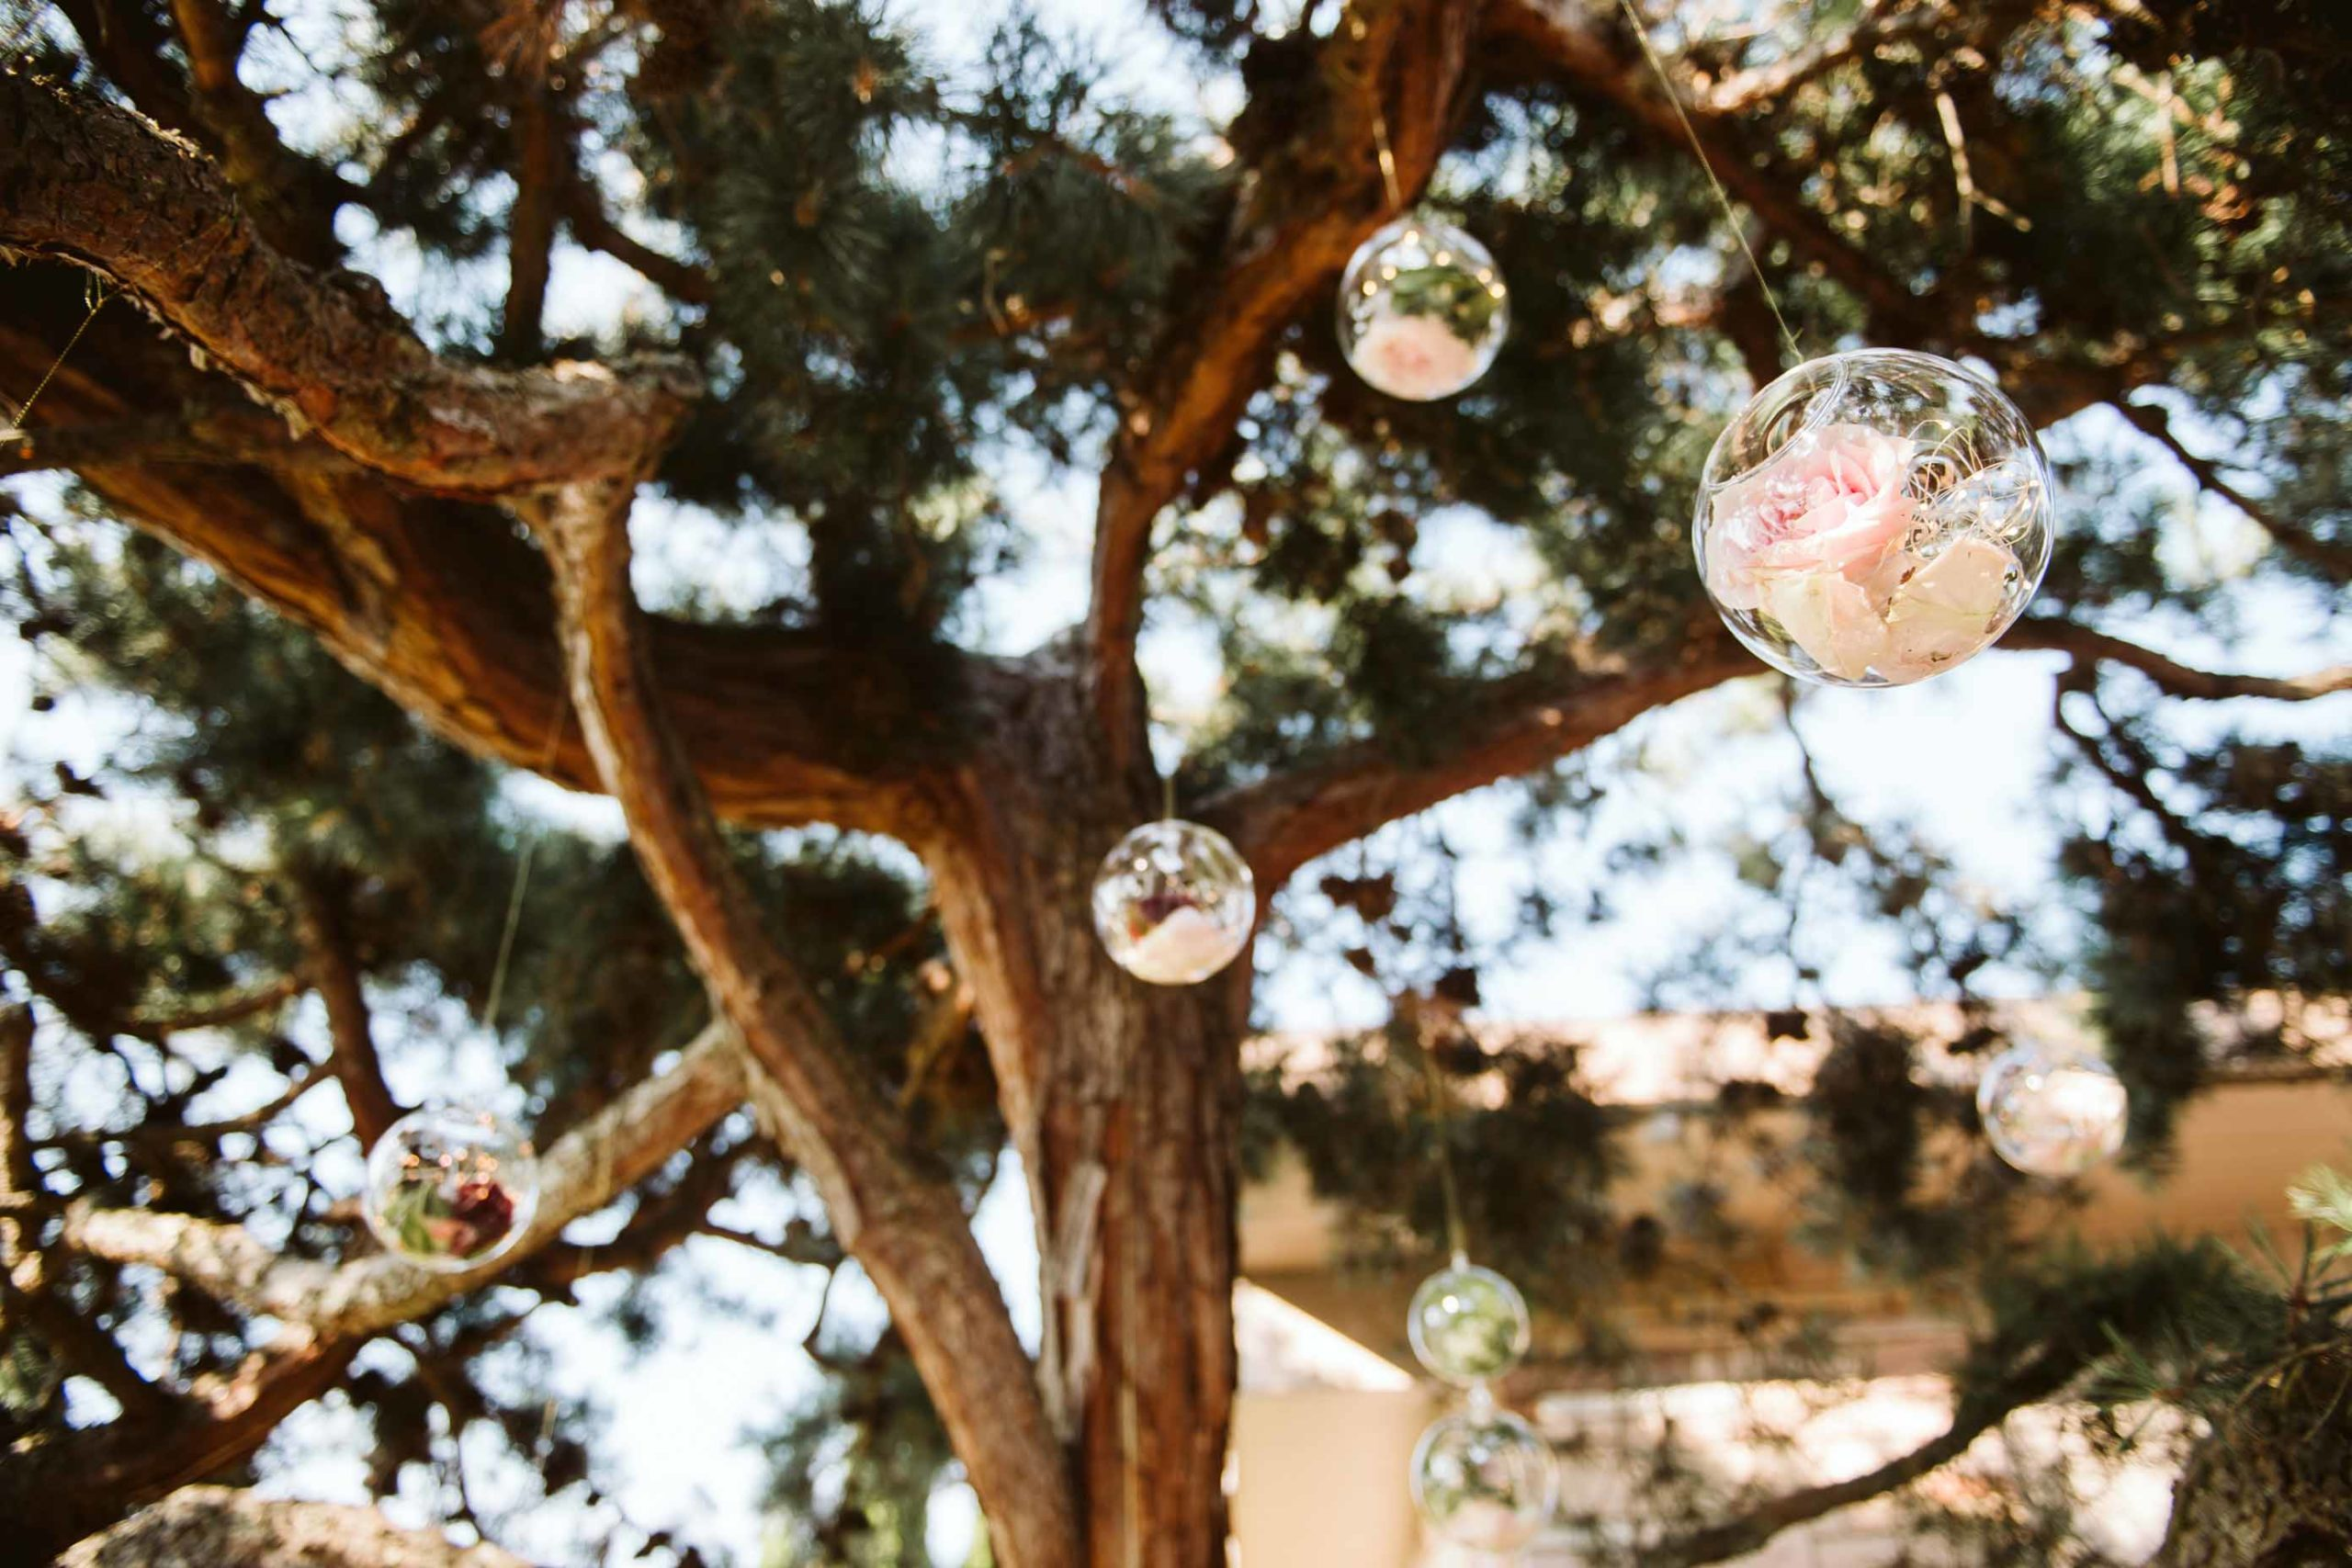 Round glass globes filled with fairy lights and roses suspended in a tree for a backyard wedding.